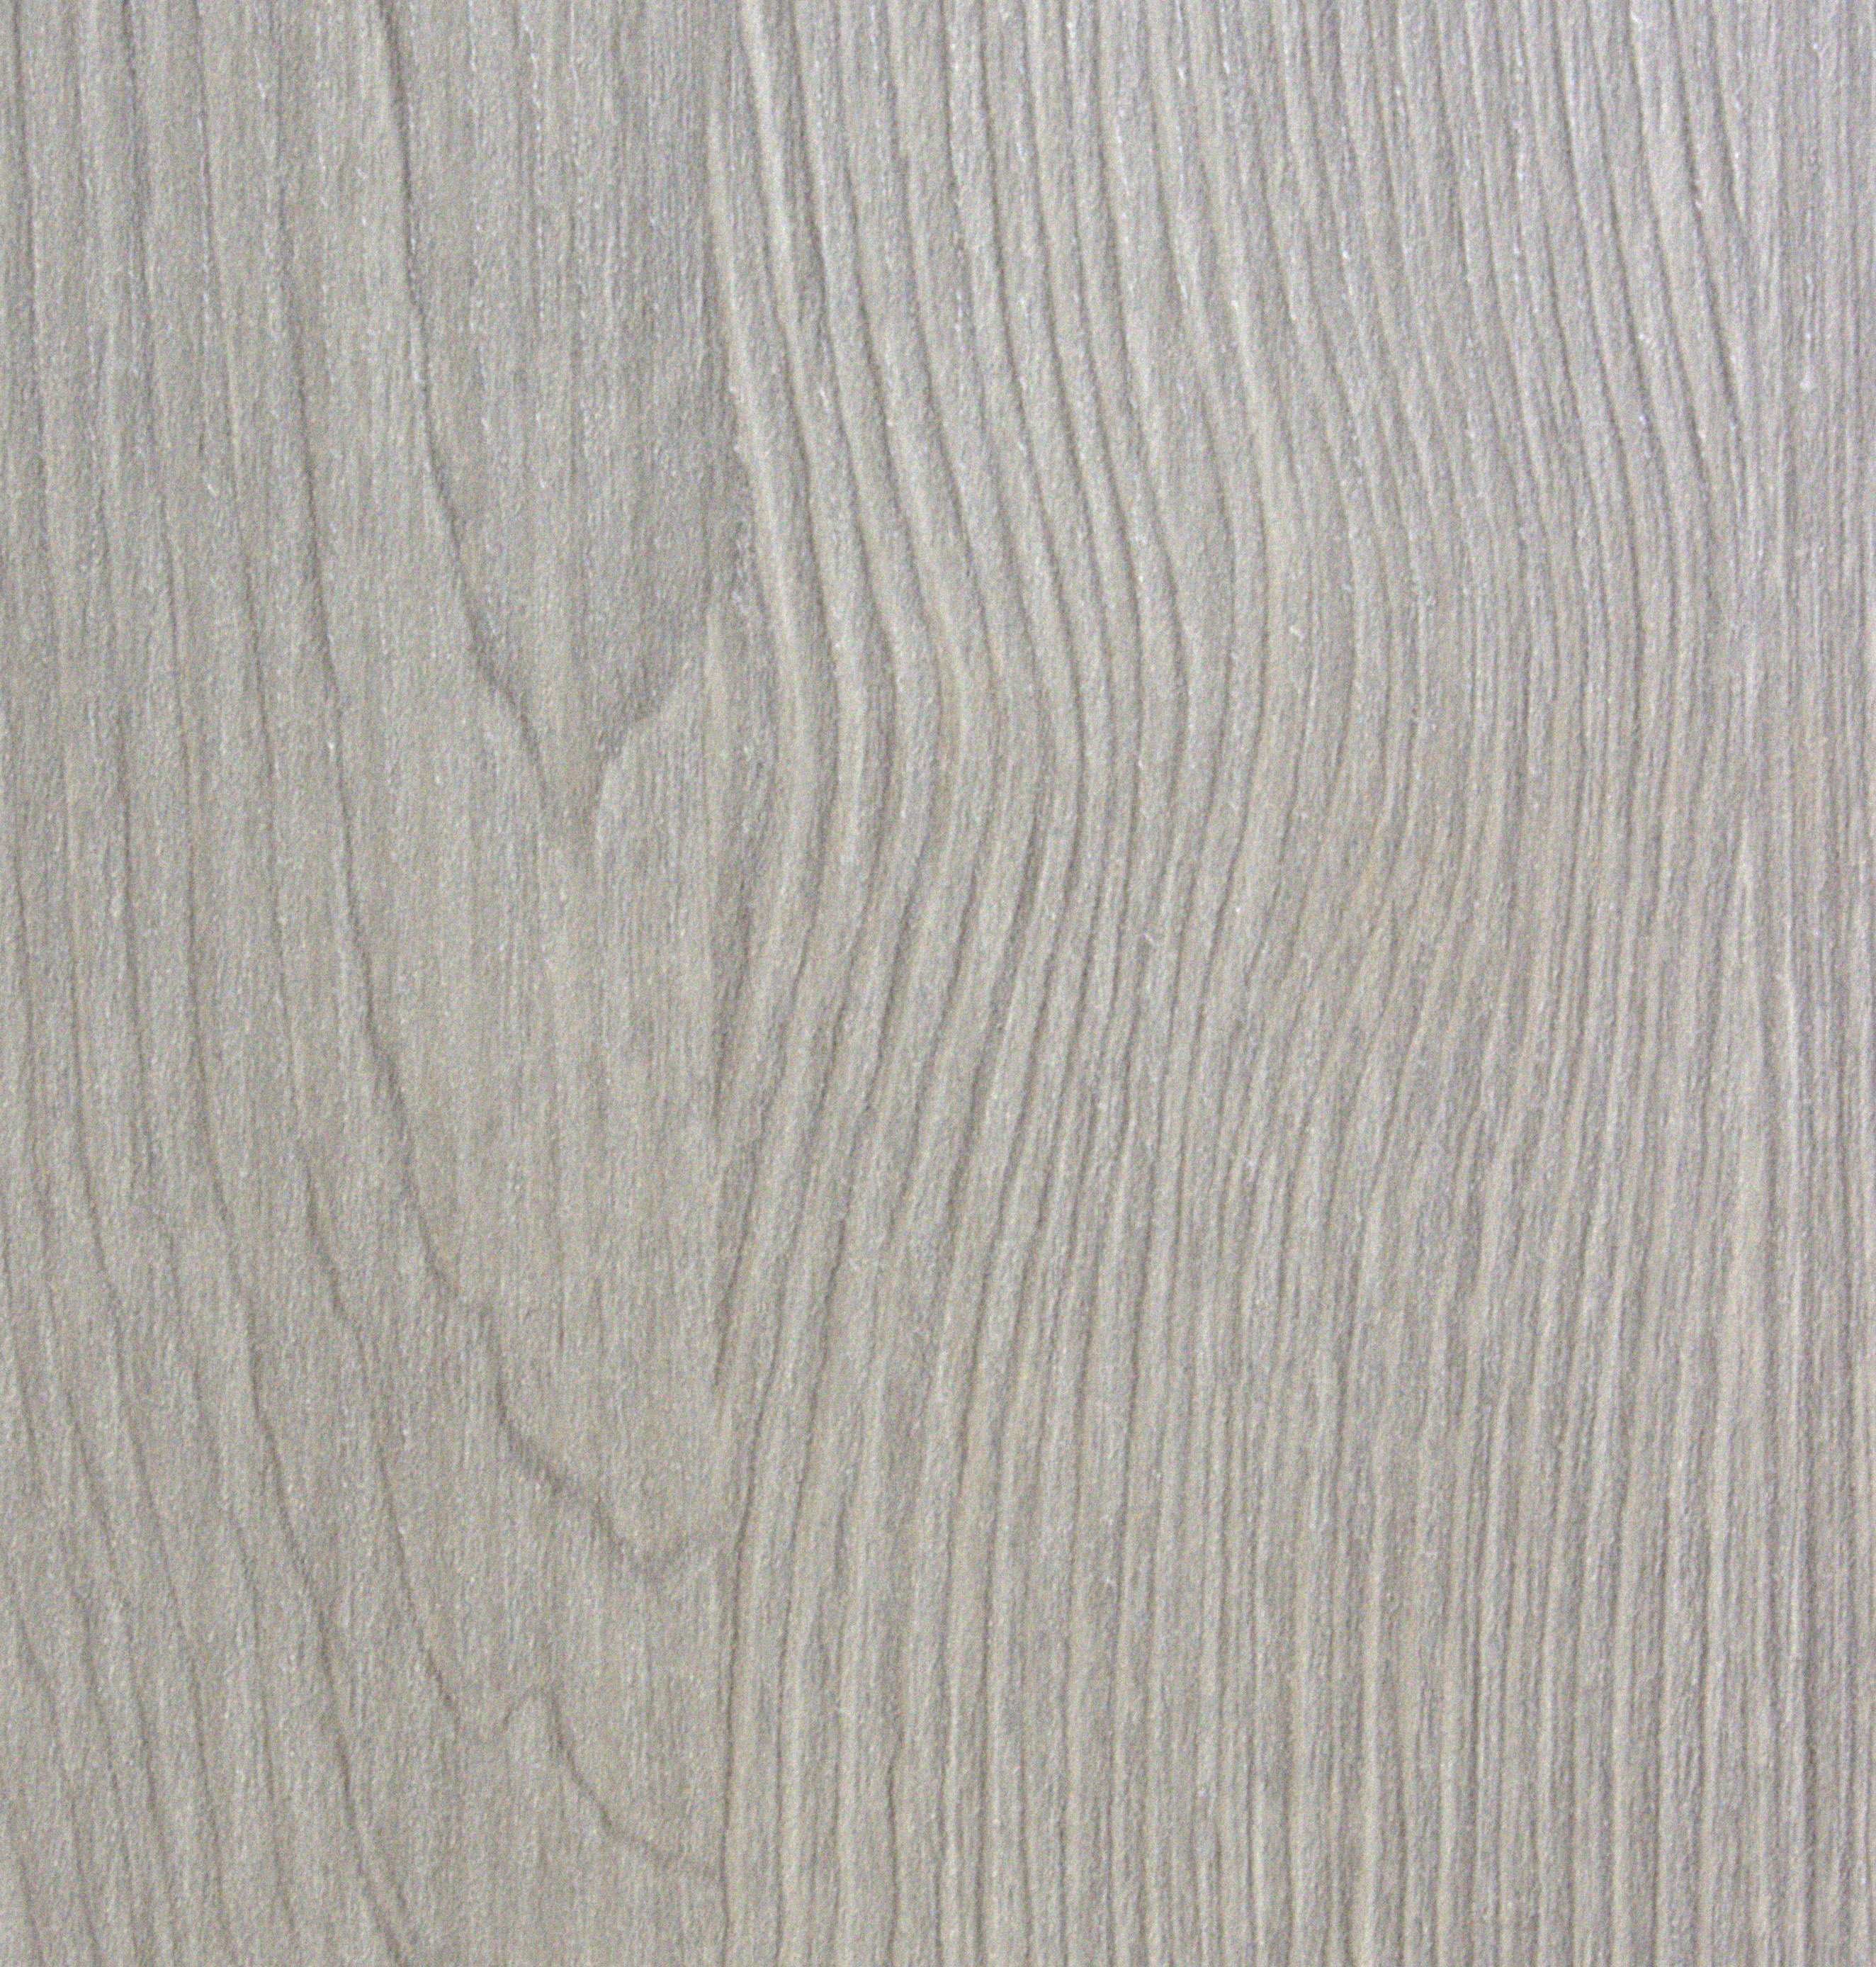 Maple Melamine Kitchen Cabinets Vs Wood 2 Side Texture Mdf Backing Chamaleonglam Laminates